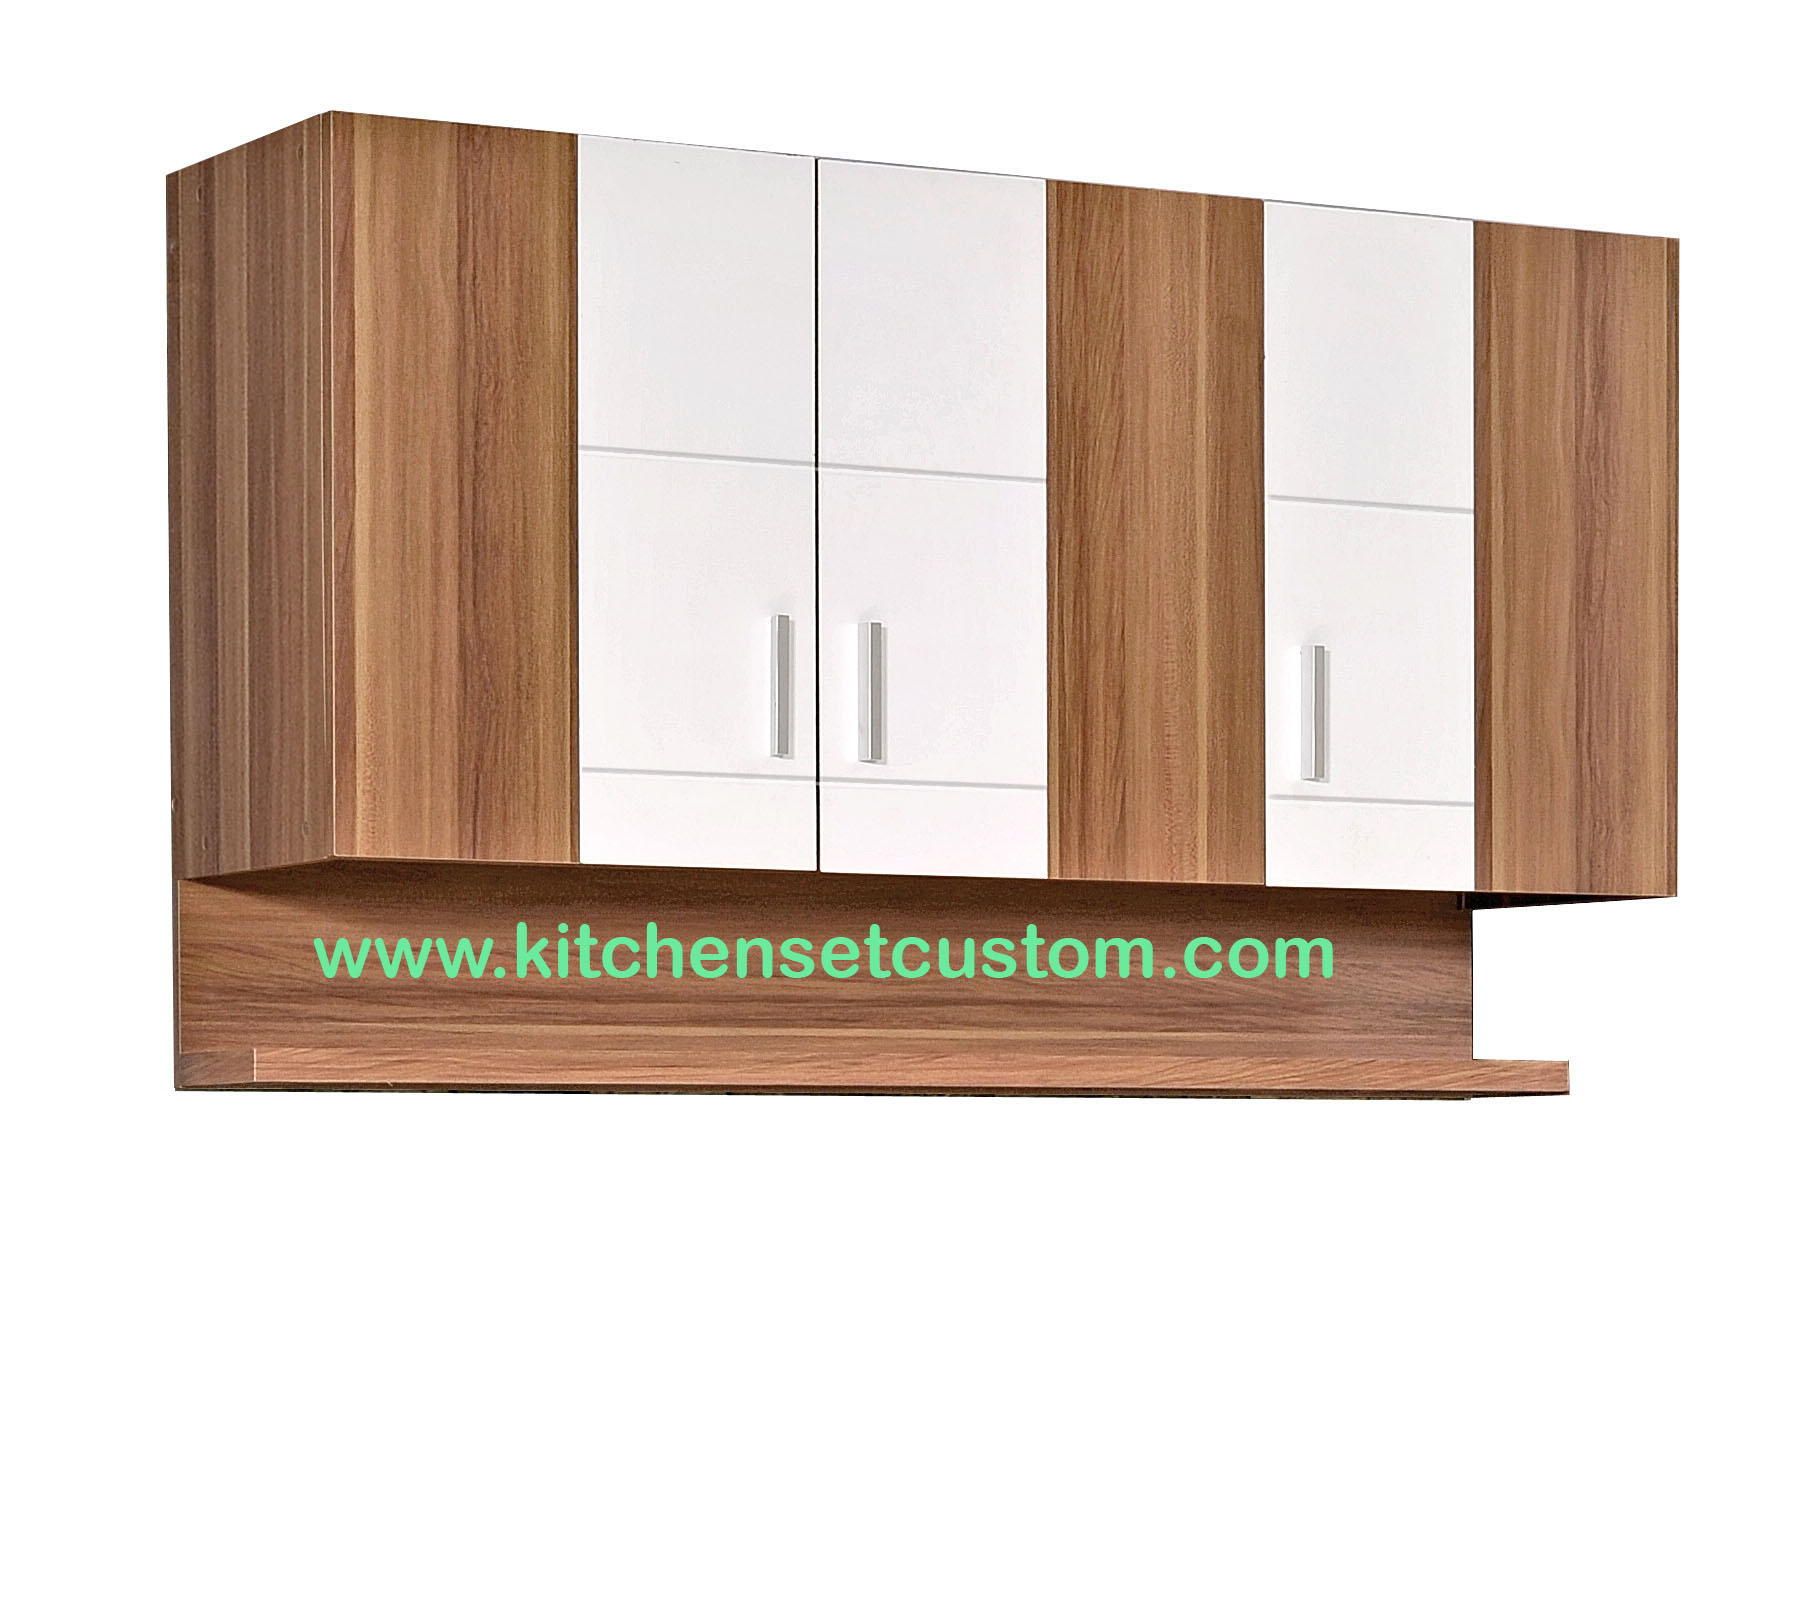 Kitchen Set 3 Pintu KSA 2753 Graver Furniture